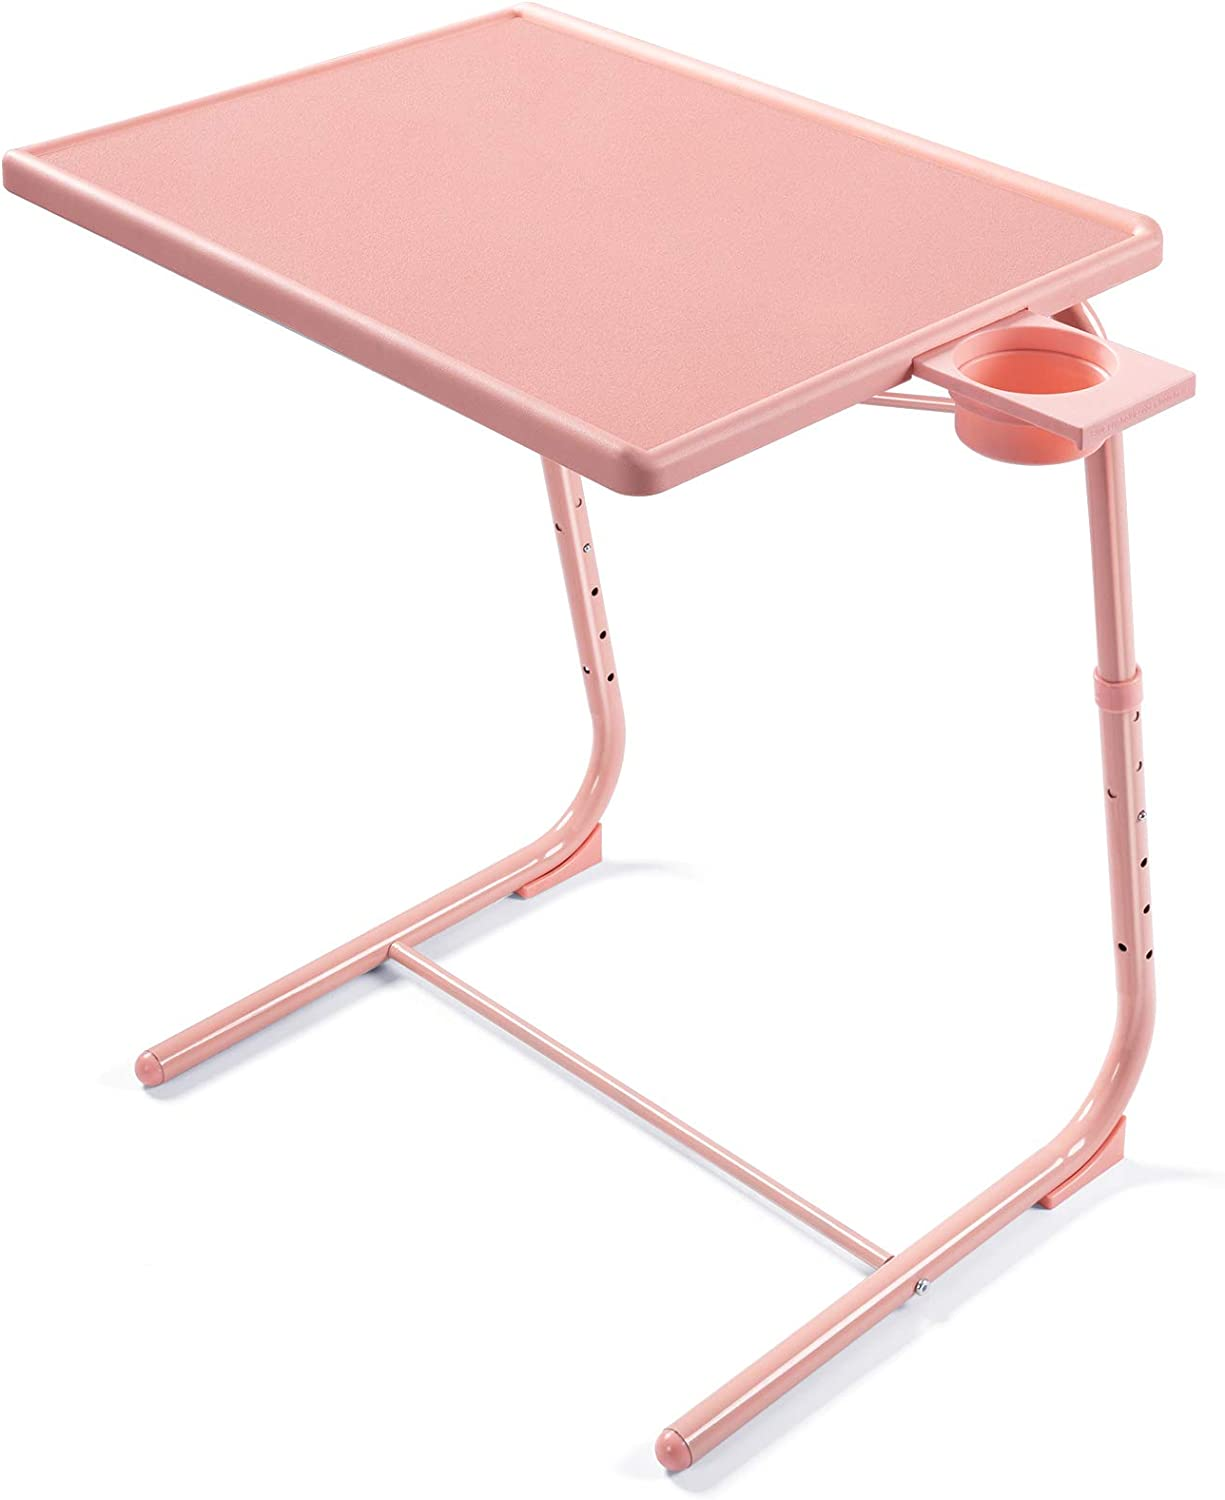 Adjustable TV Tray Table - TV Dinner Tray on Bed & Sofa, Comfortable Folding Table with 6 Height & 3 Tilt Angle Adjustments (Pink)